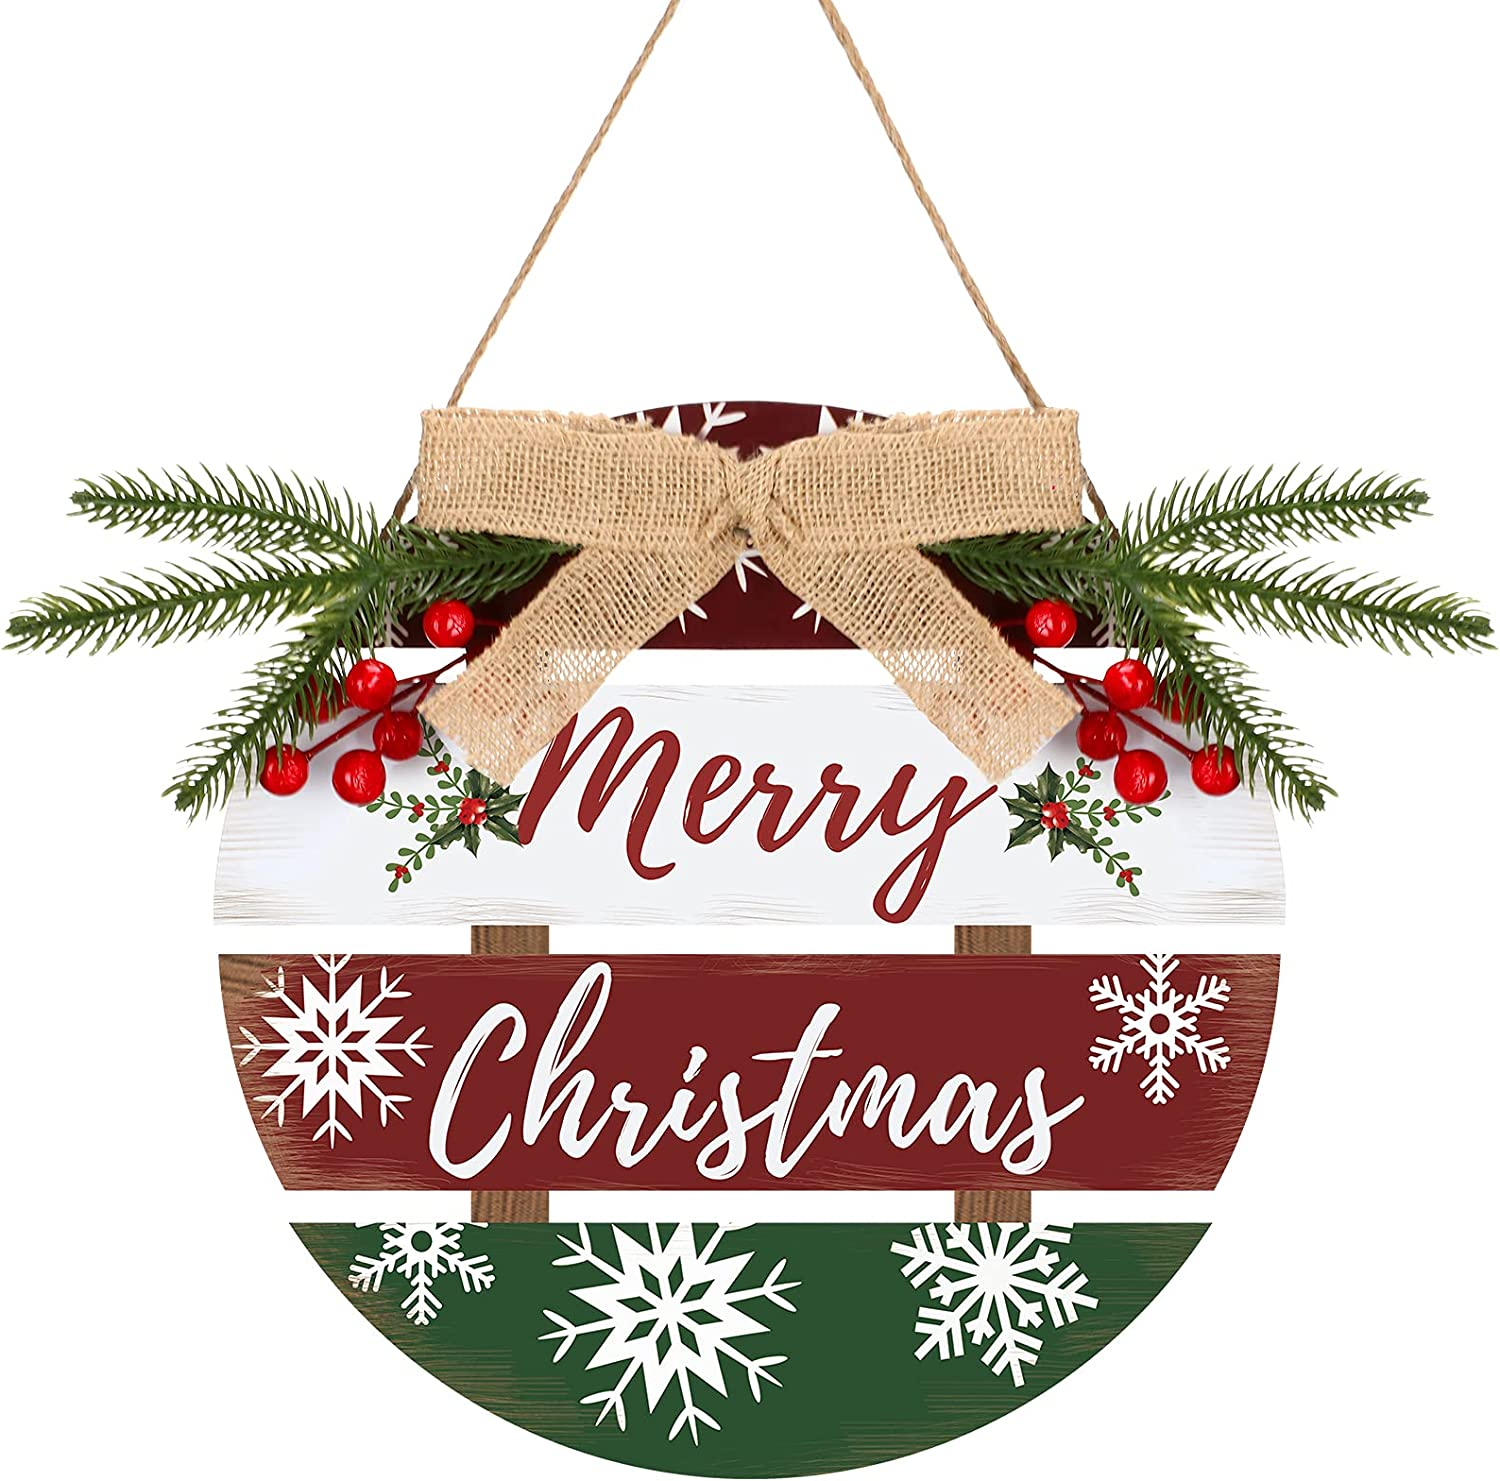 Merry Christmas Decorative Door Sign Buffalo Check Plaid Wreath Wooden Sign Rustic Hanging Holiday Decor Welcome Sign Xmas Outdoor Sign for Home Window Wall Farmhouse Indoor Outdoor Decoration